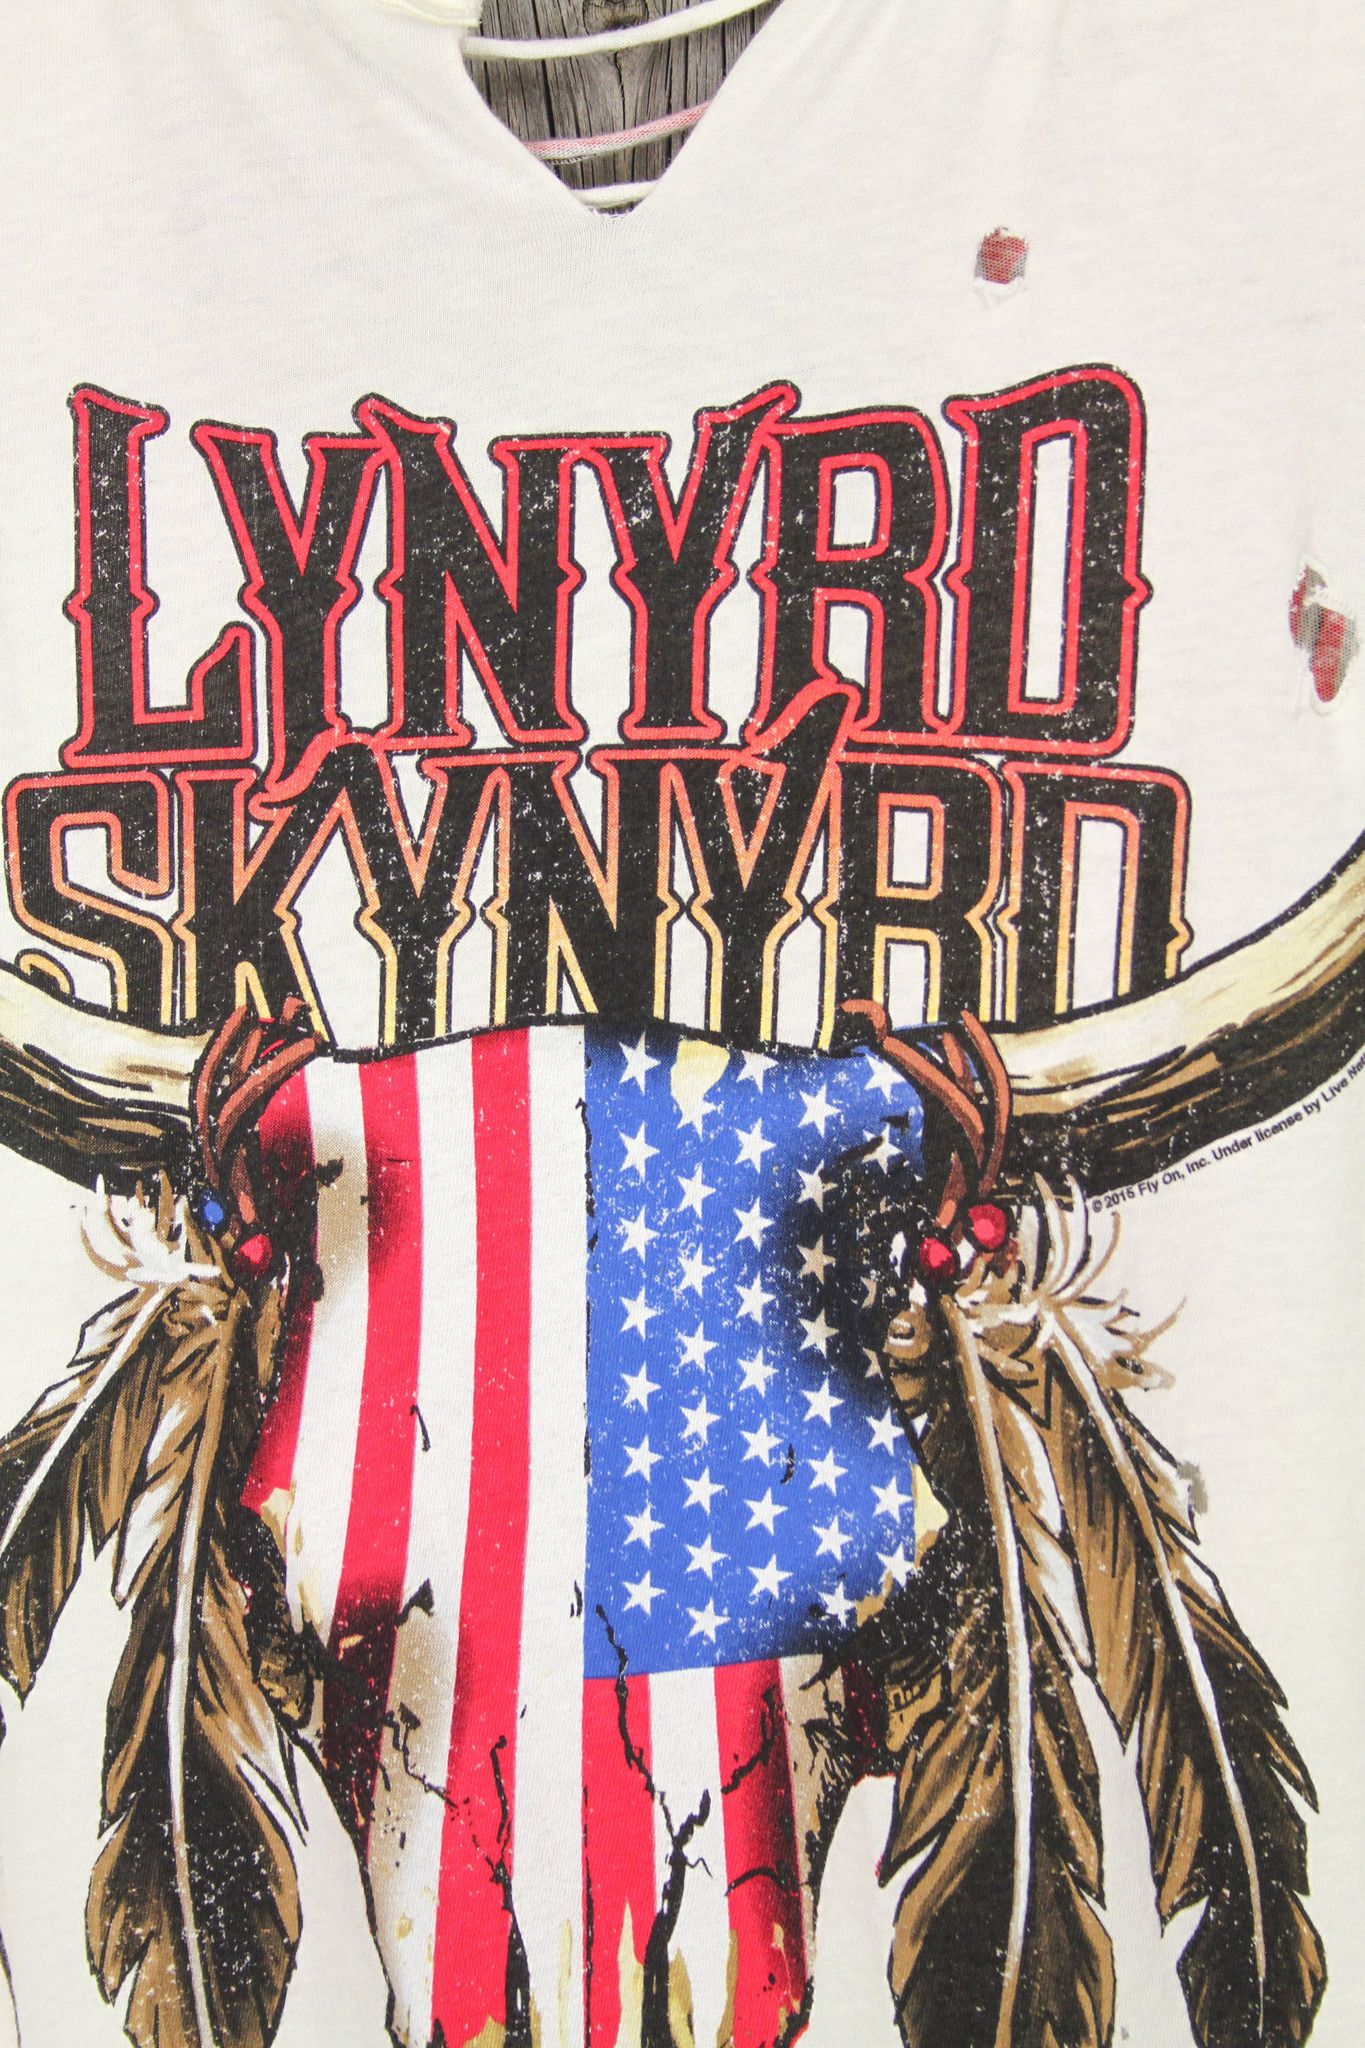 0296673c5fe4d8 TRUNK LTD Lynyrd Skynyrd Longhorn Shredded Tank